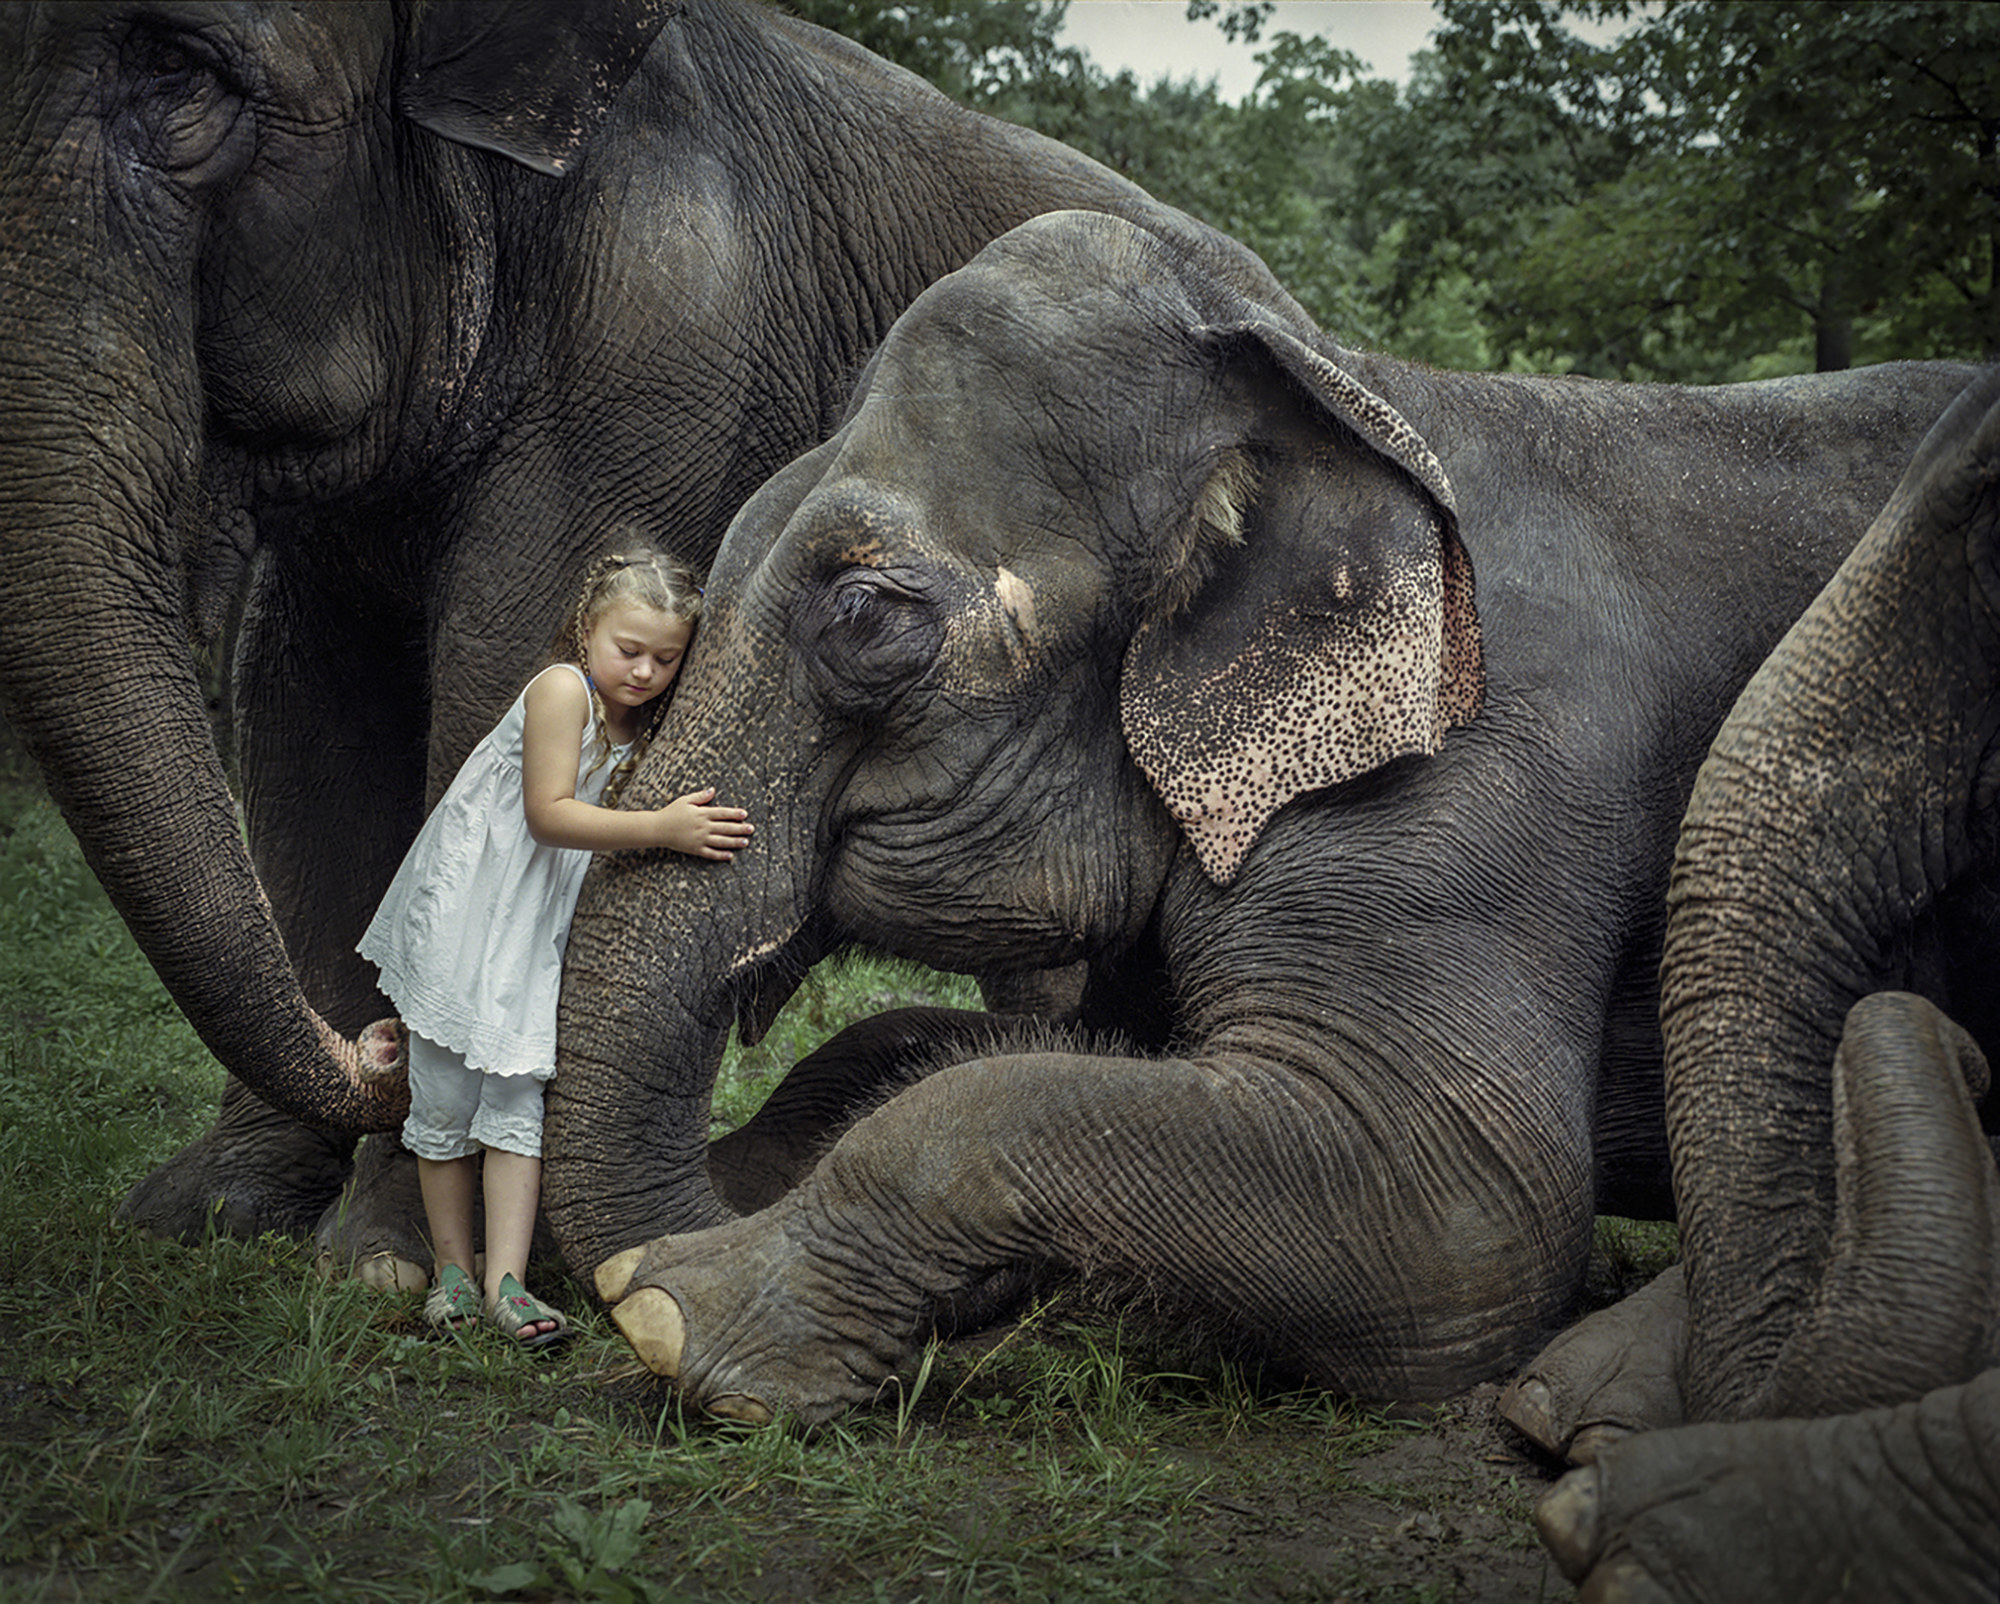 A young girl hugs the trunk of an elephant